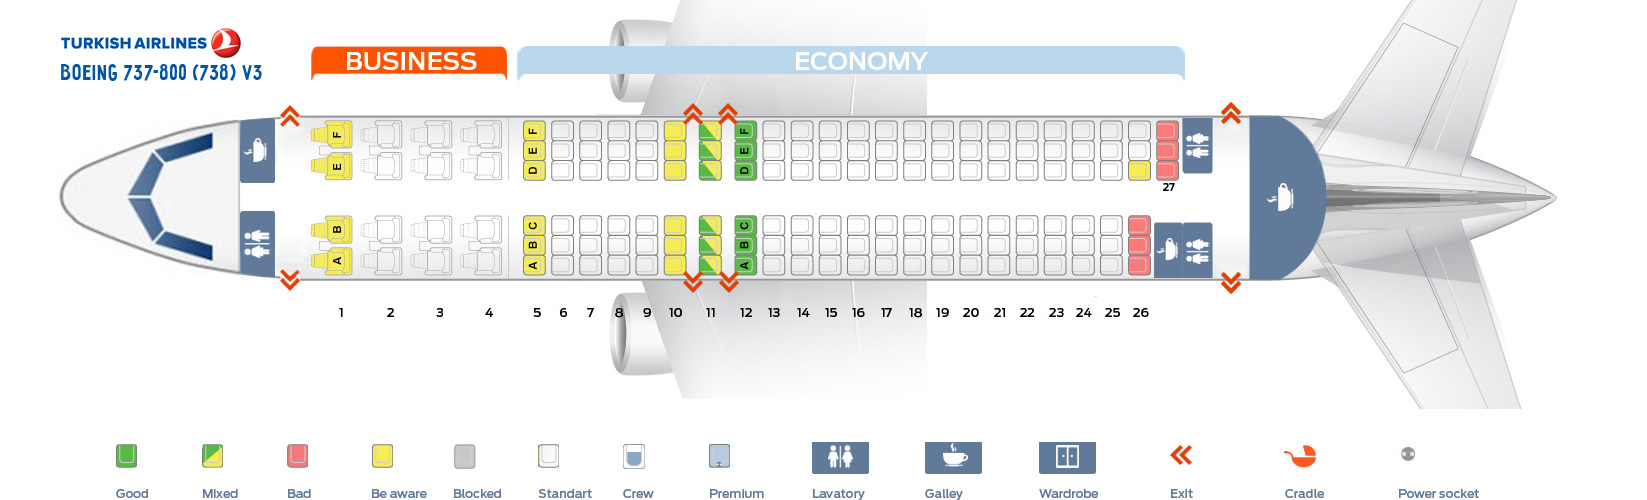 Seat Map Boeing 737-800 V3 Turkish Airlines